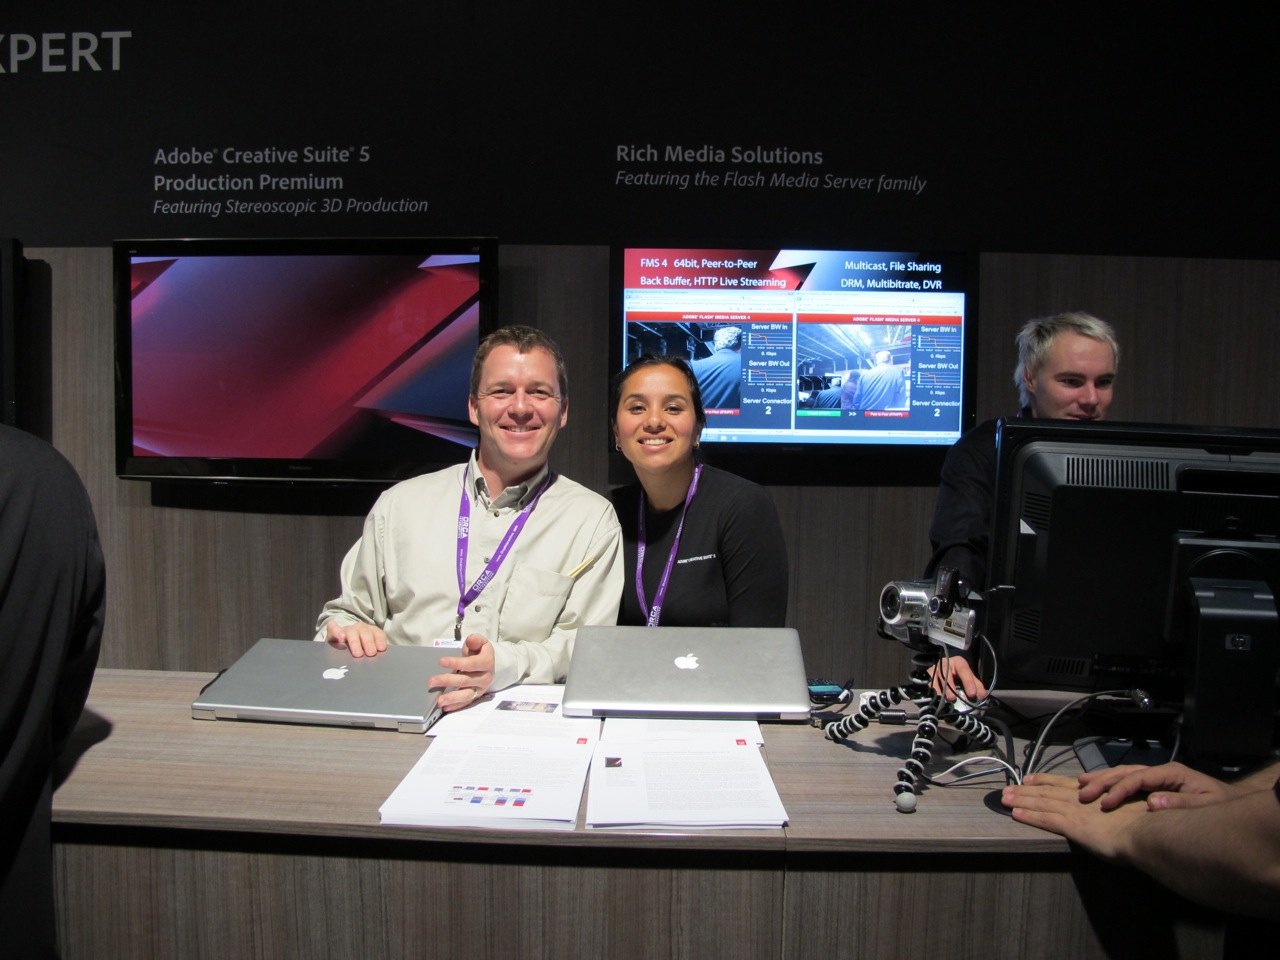 Adobe's Kevin Towes and Desiree Motamedi, looking remarkable chipper on the last day of IBC.